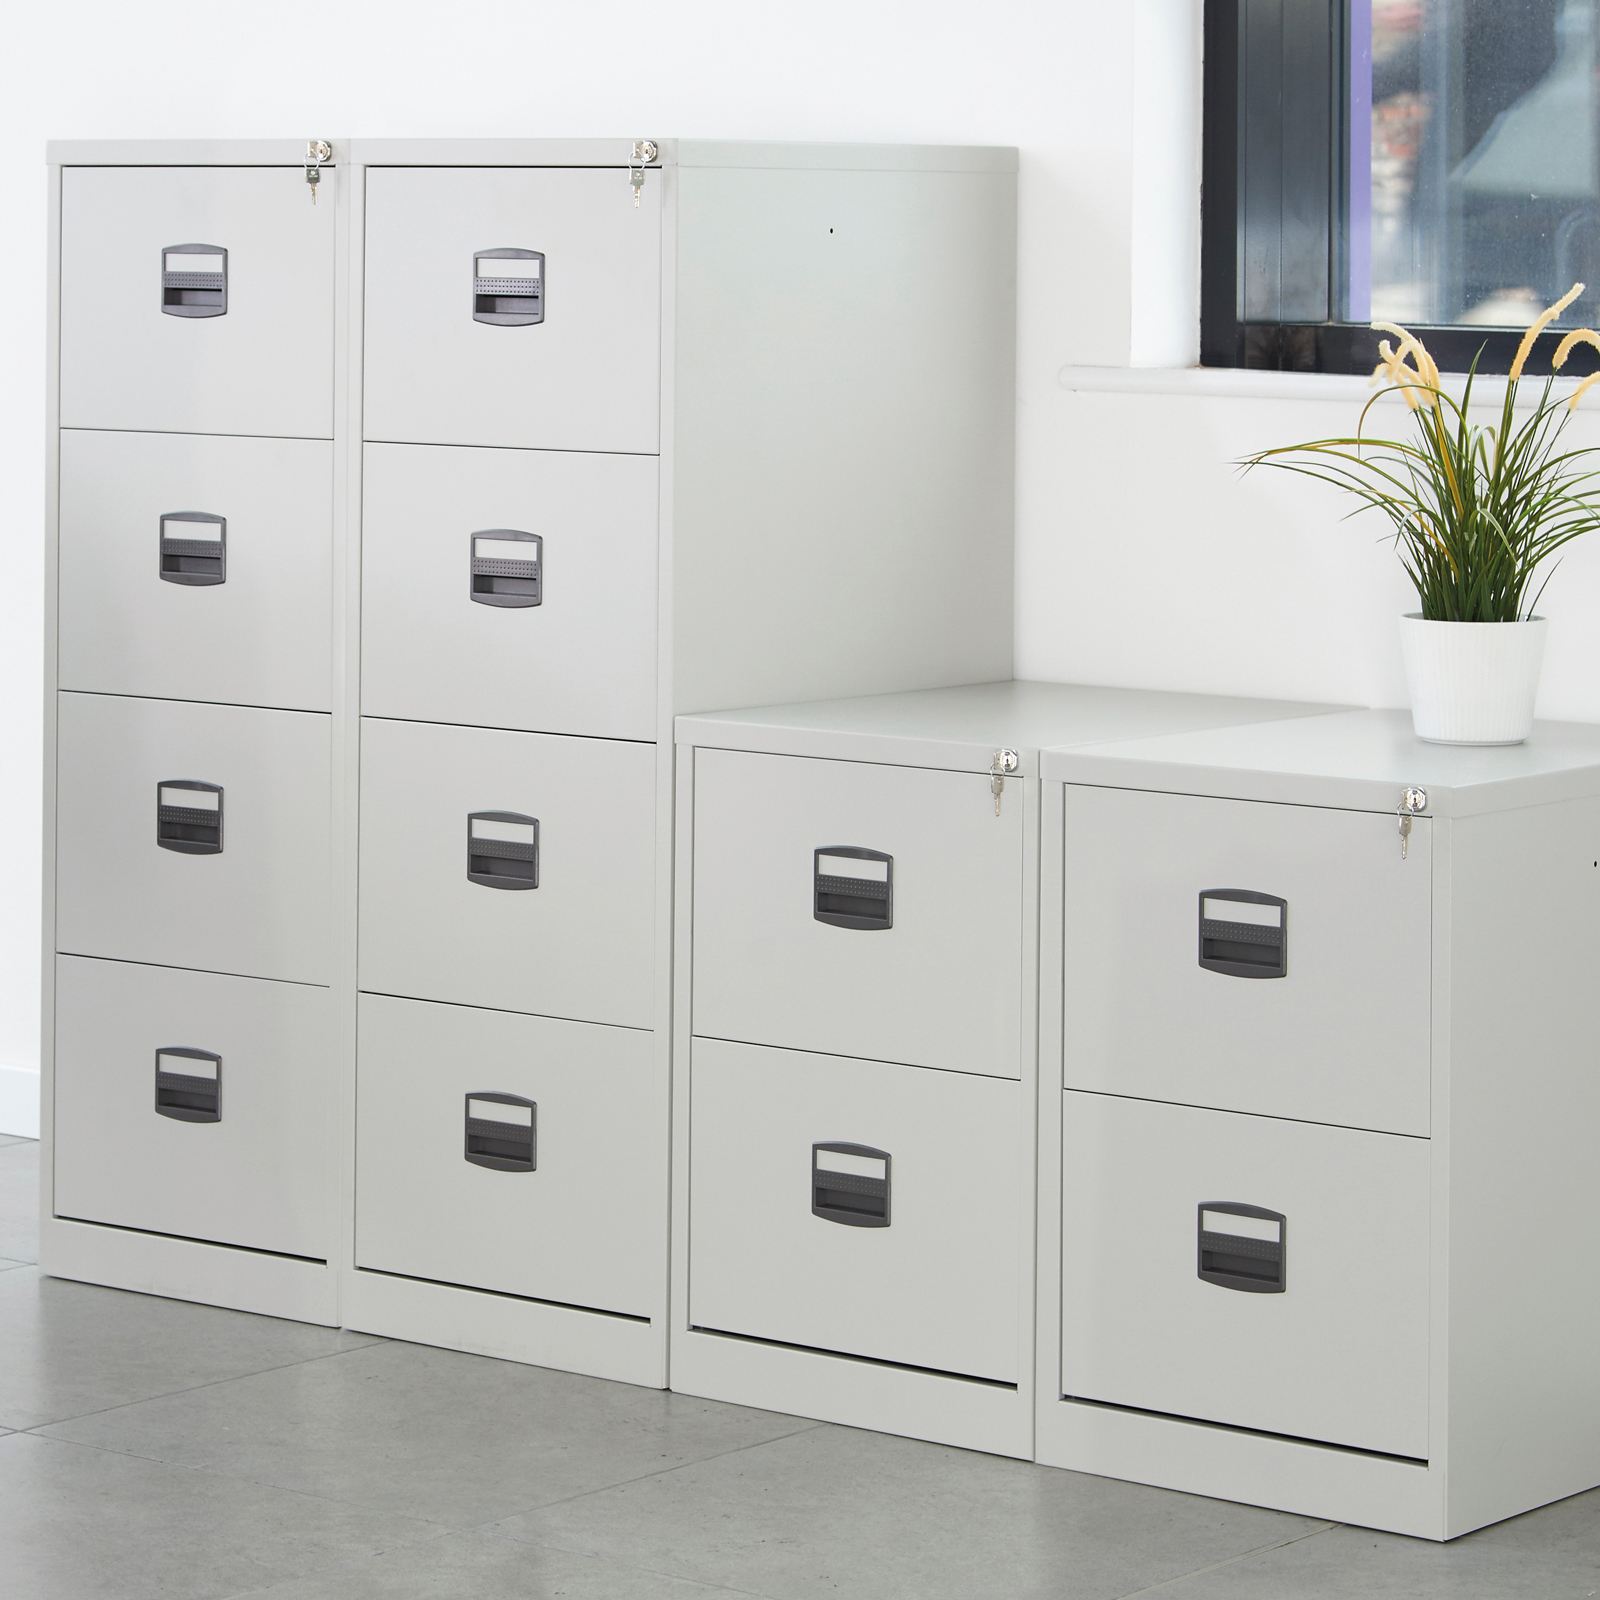 Filing Cabinets Special Offers